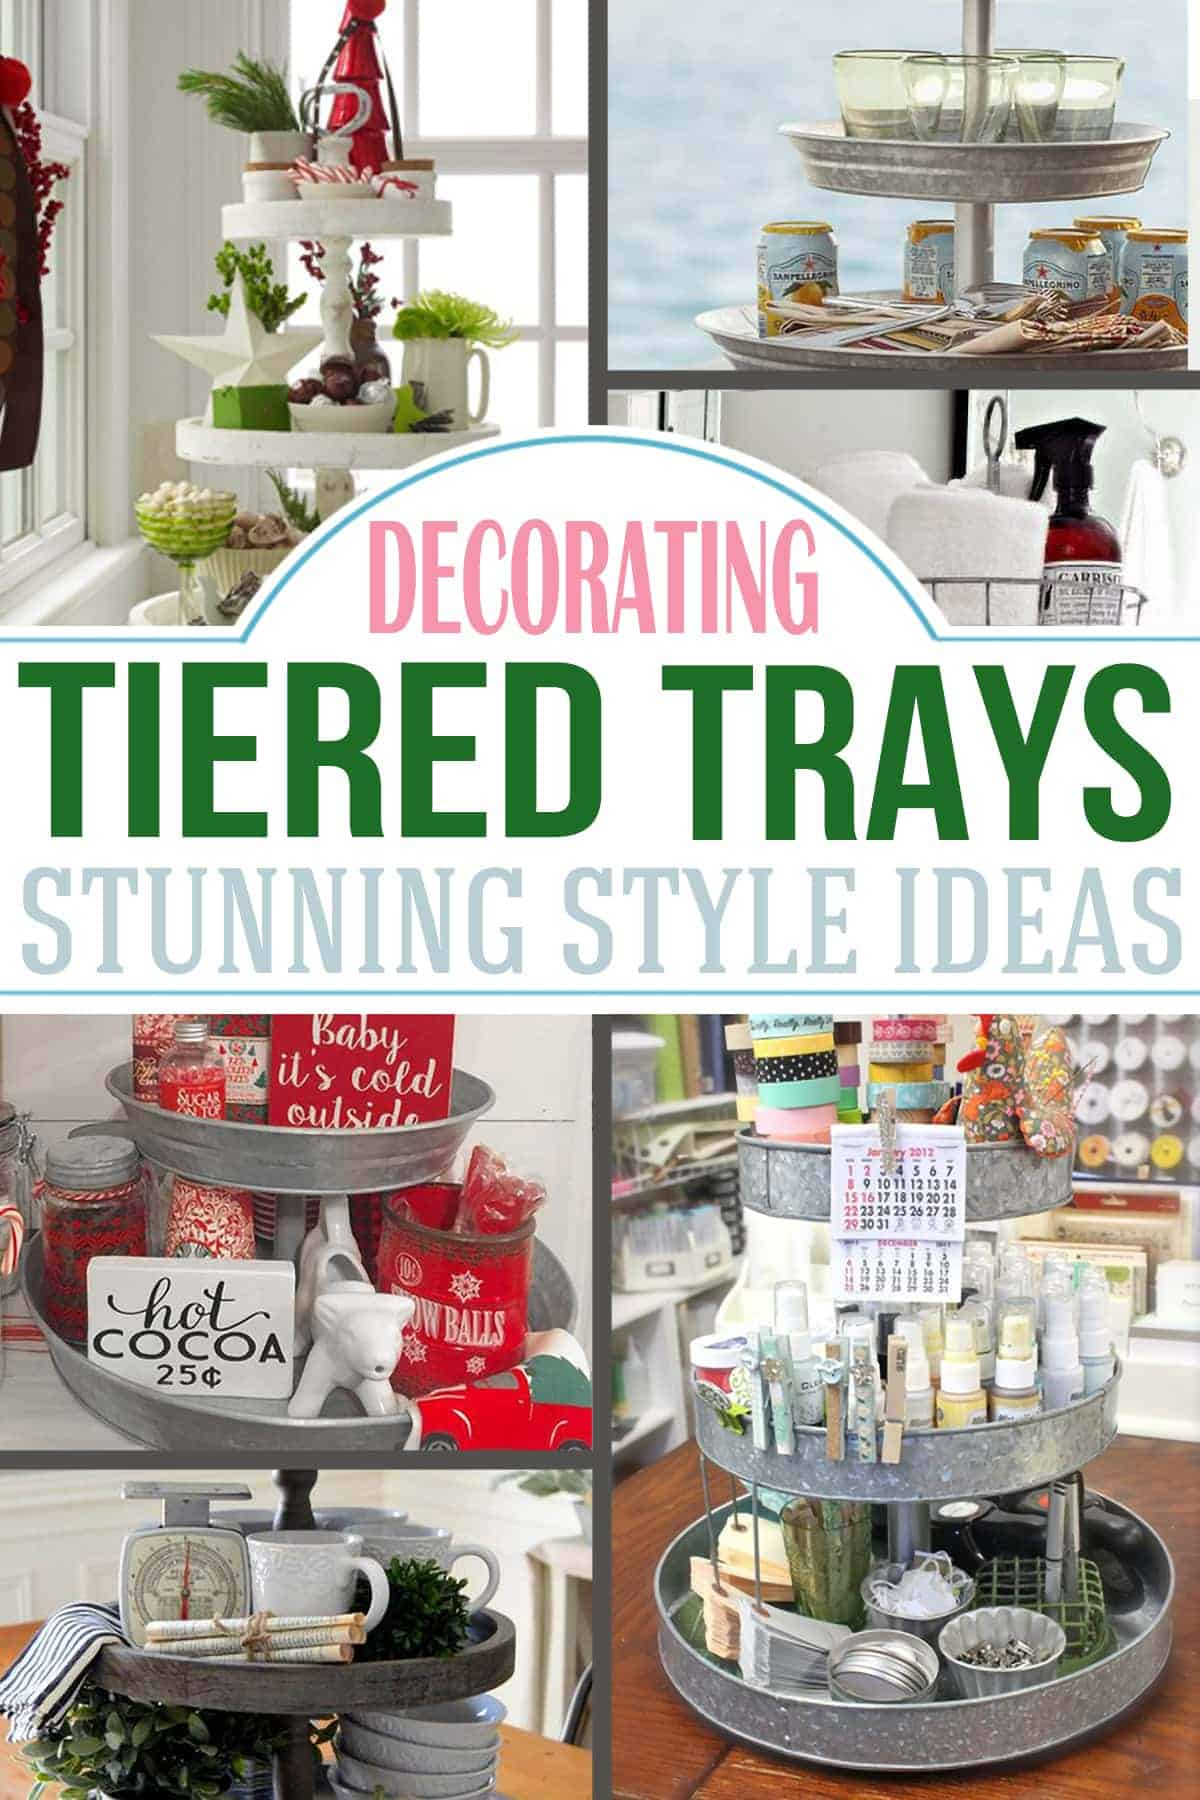 3 Tier Serving Trays Decorating Ideas Craving Some Creativity